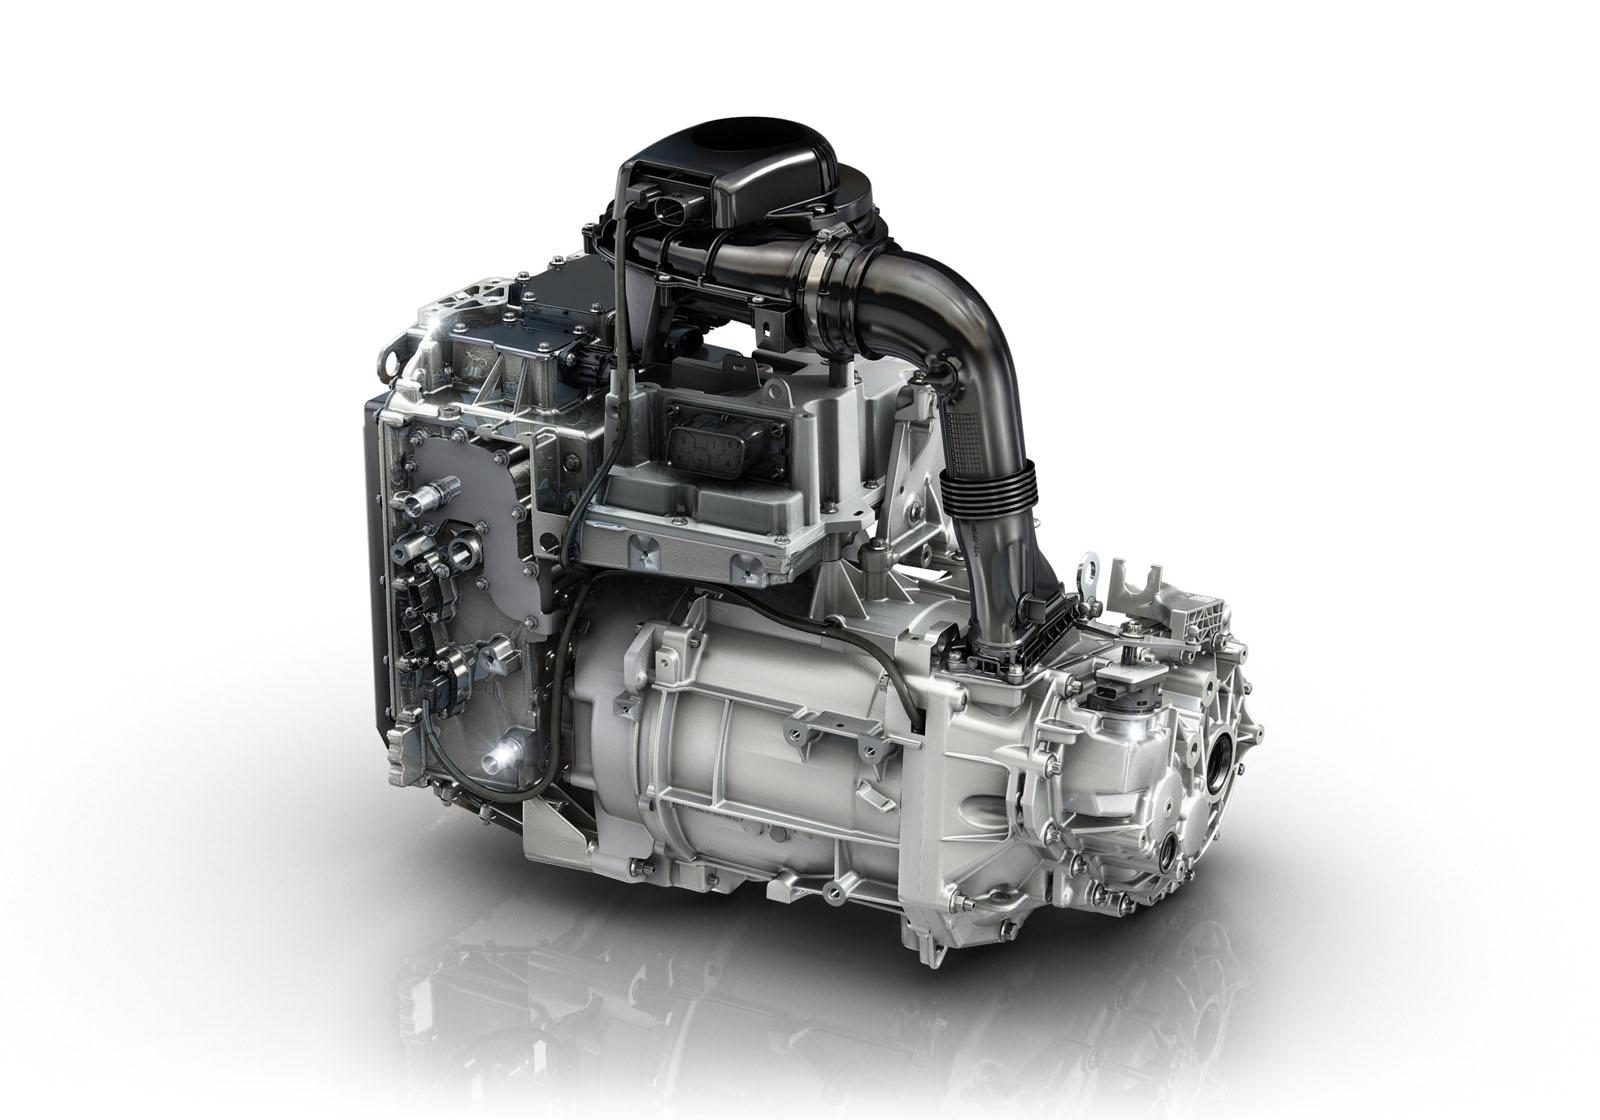 Renault working on 730cc two stroke twin cylinder turbo diesel engine